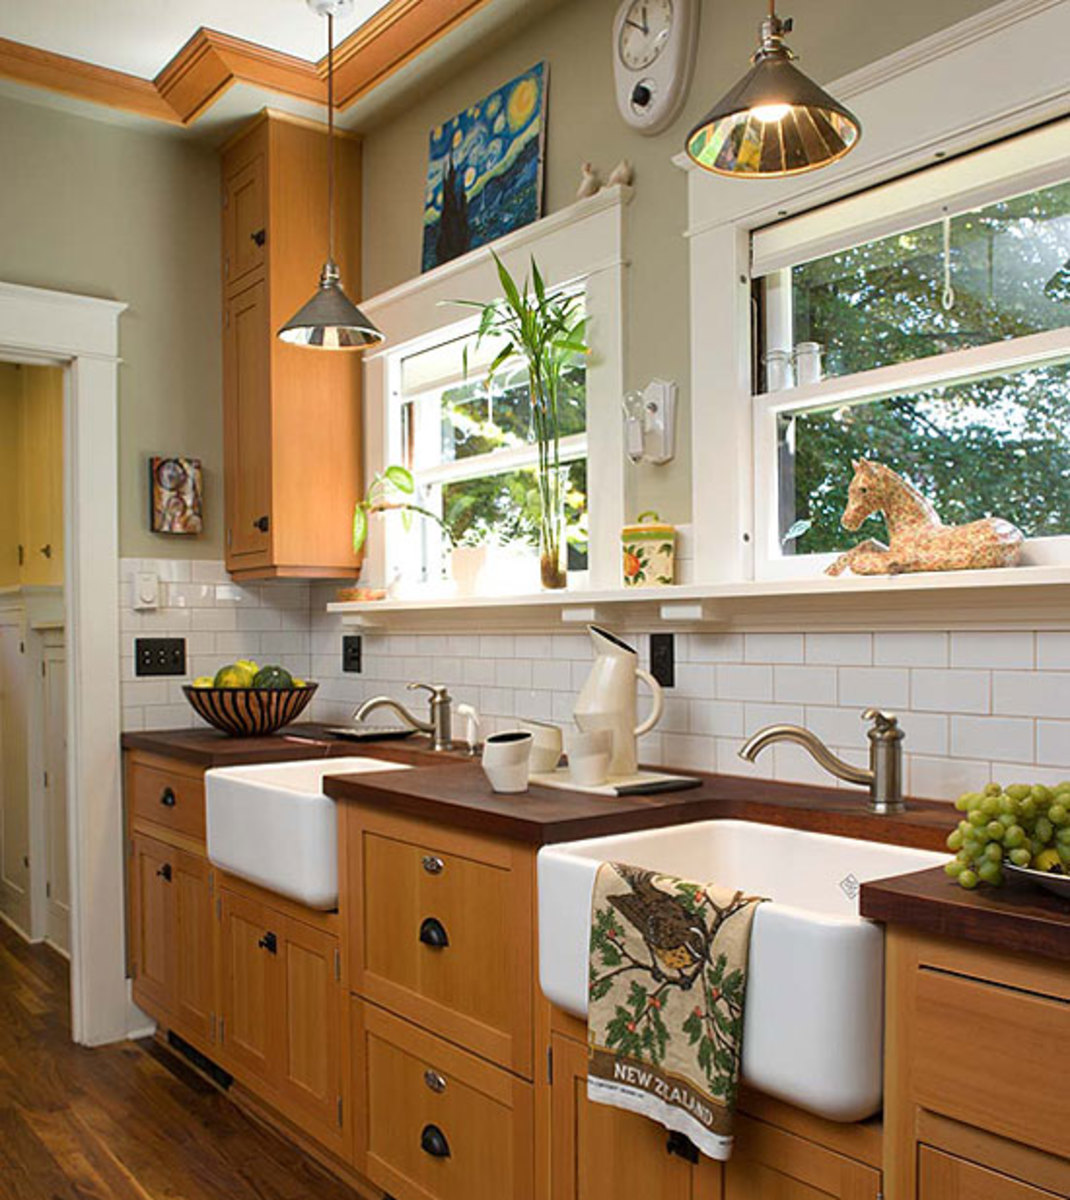 White subway tile works for Victorian-era kitchens and those of the Arts & Crafts revival. Photo by William Wright.